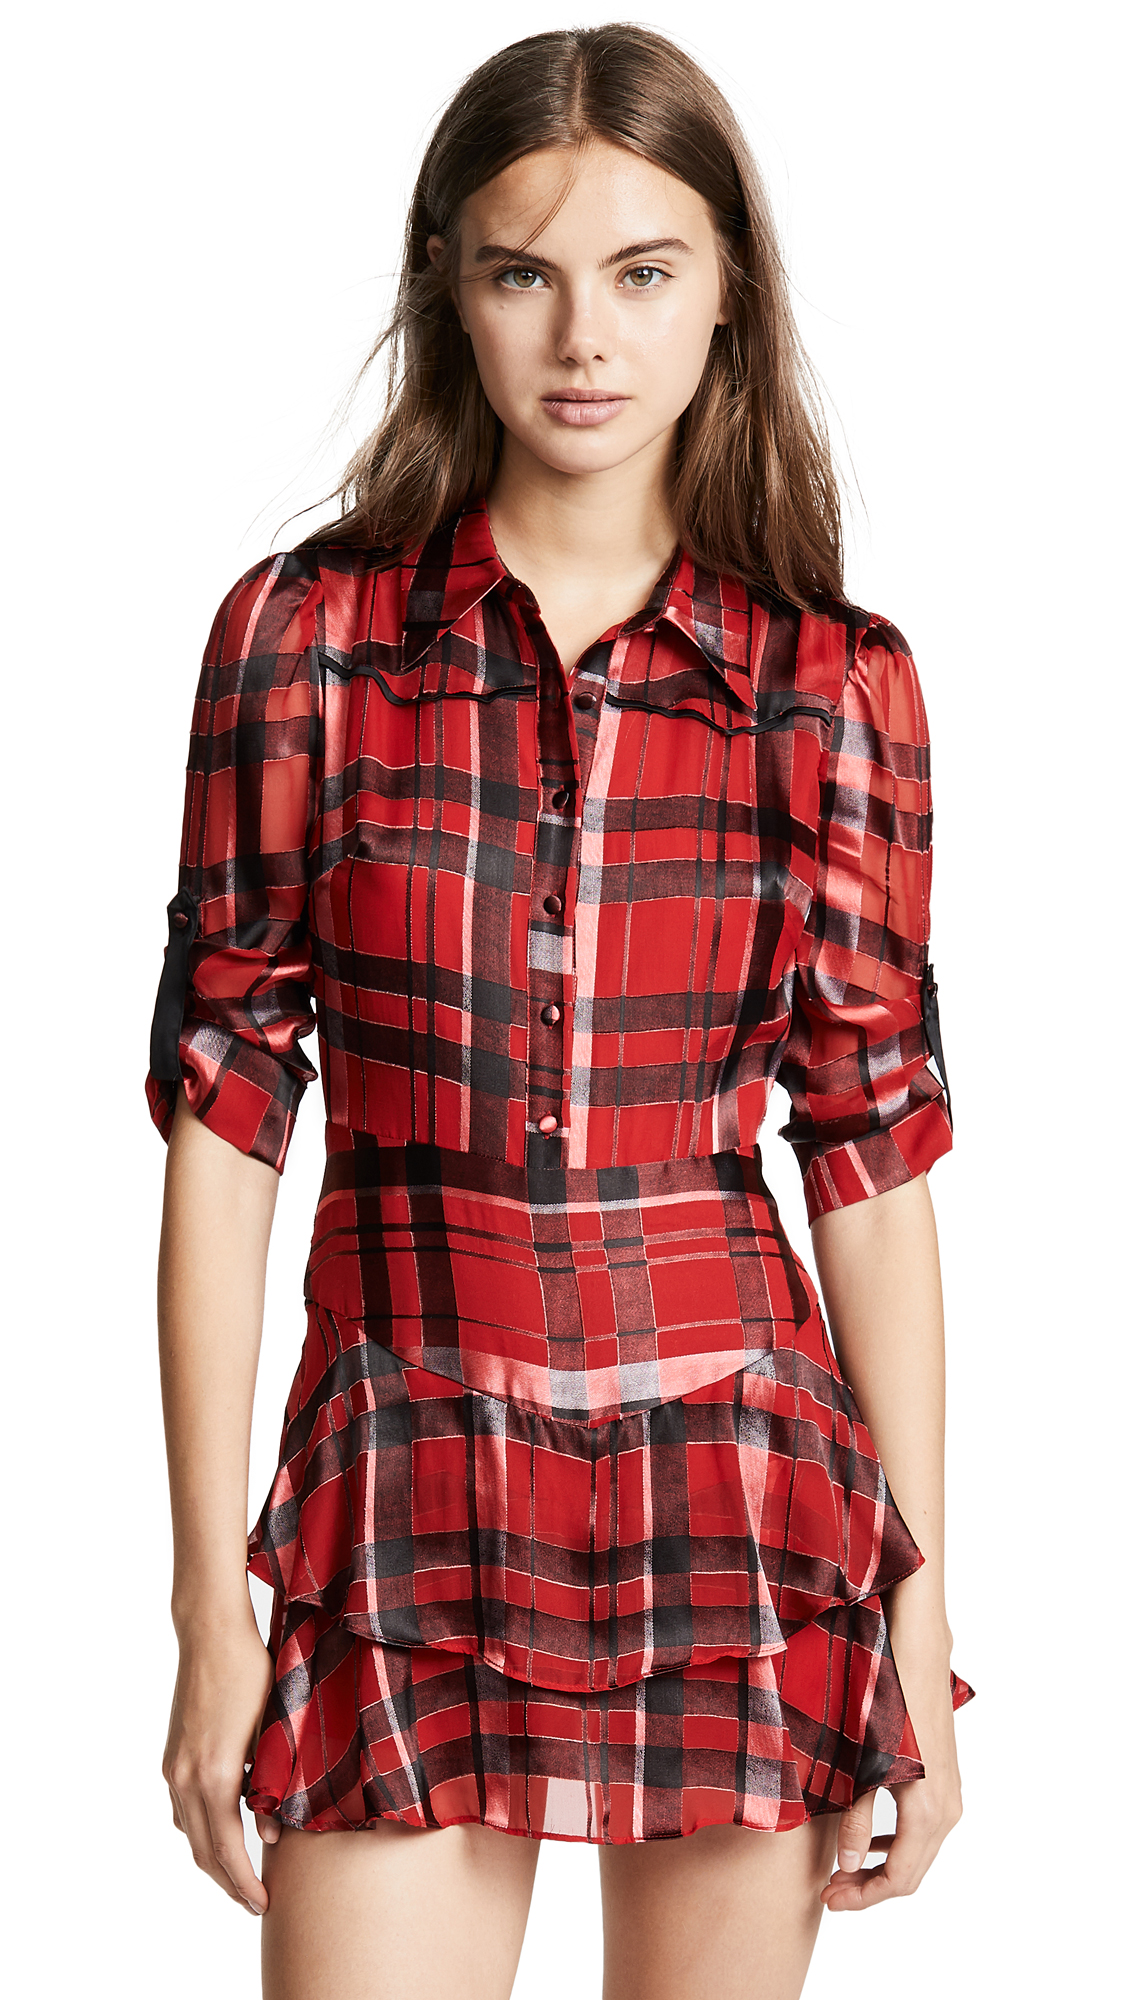 alice + olivia Hazeline Tiered Shirtdress In Windowpane Plaid/Ruby